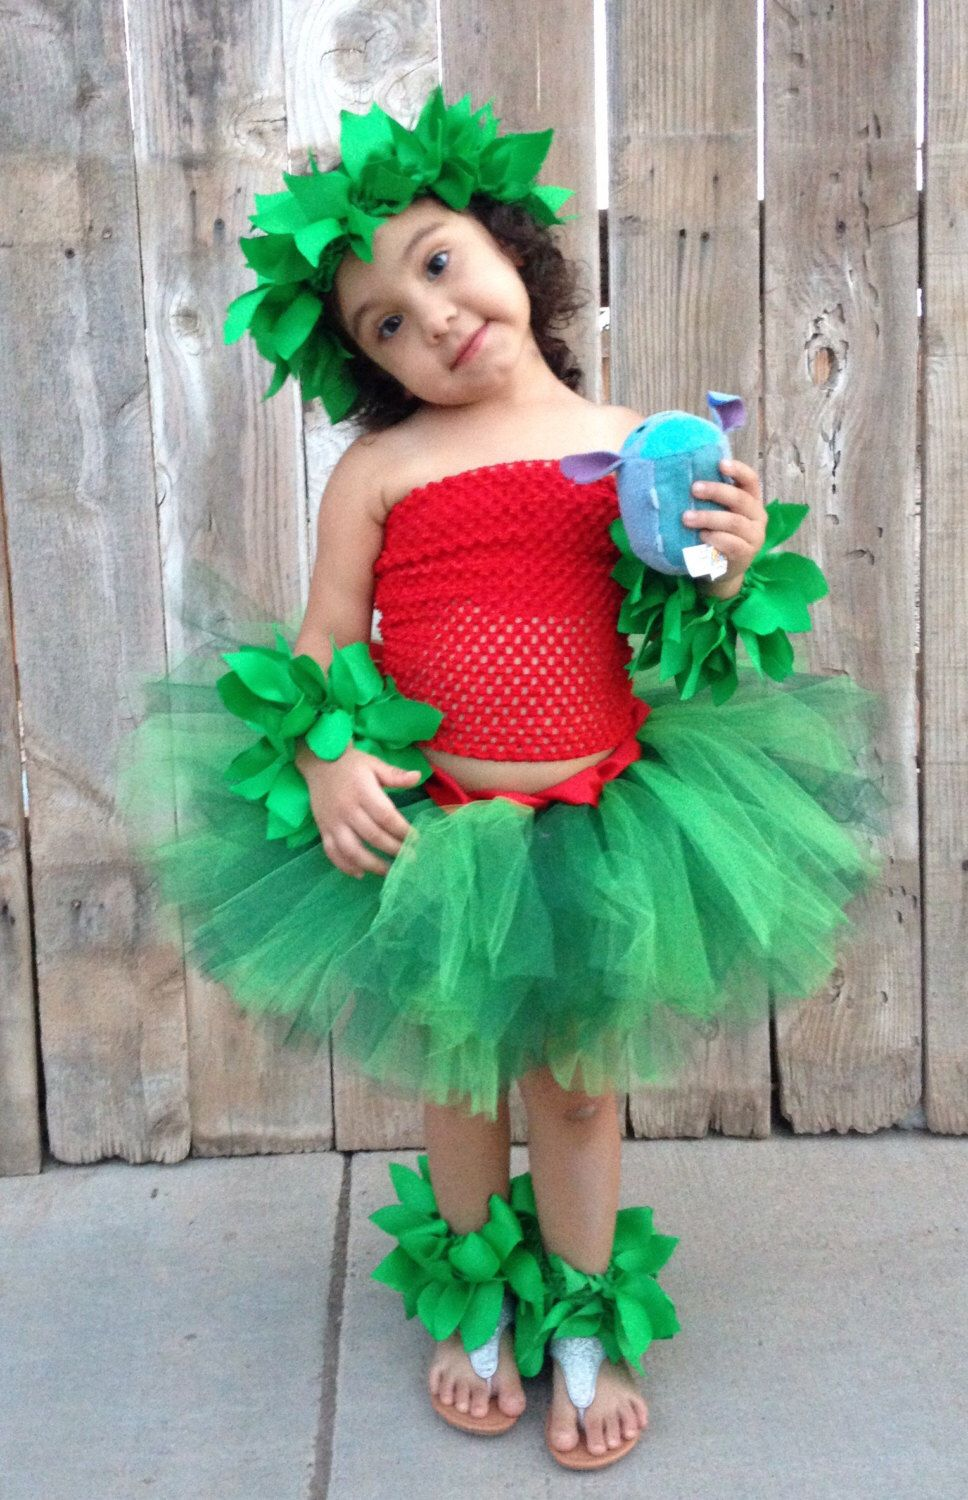 Girl Lilo Costume Dress Up Handmade Halloween Party Cosplay Birthday Tutu Tulle Outfit for Kid Toddler Child with Headband